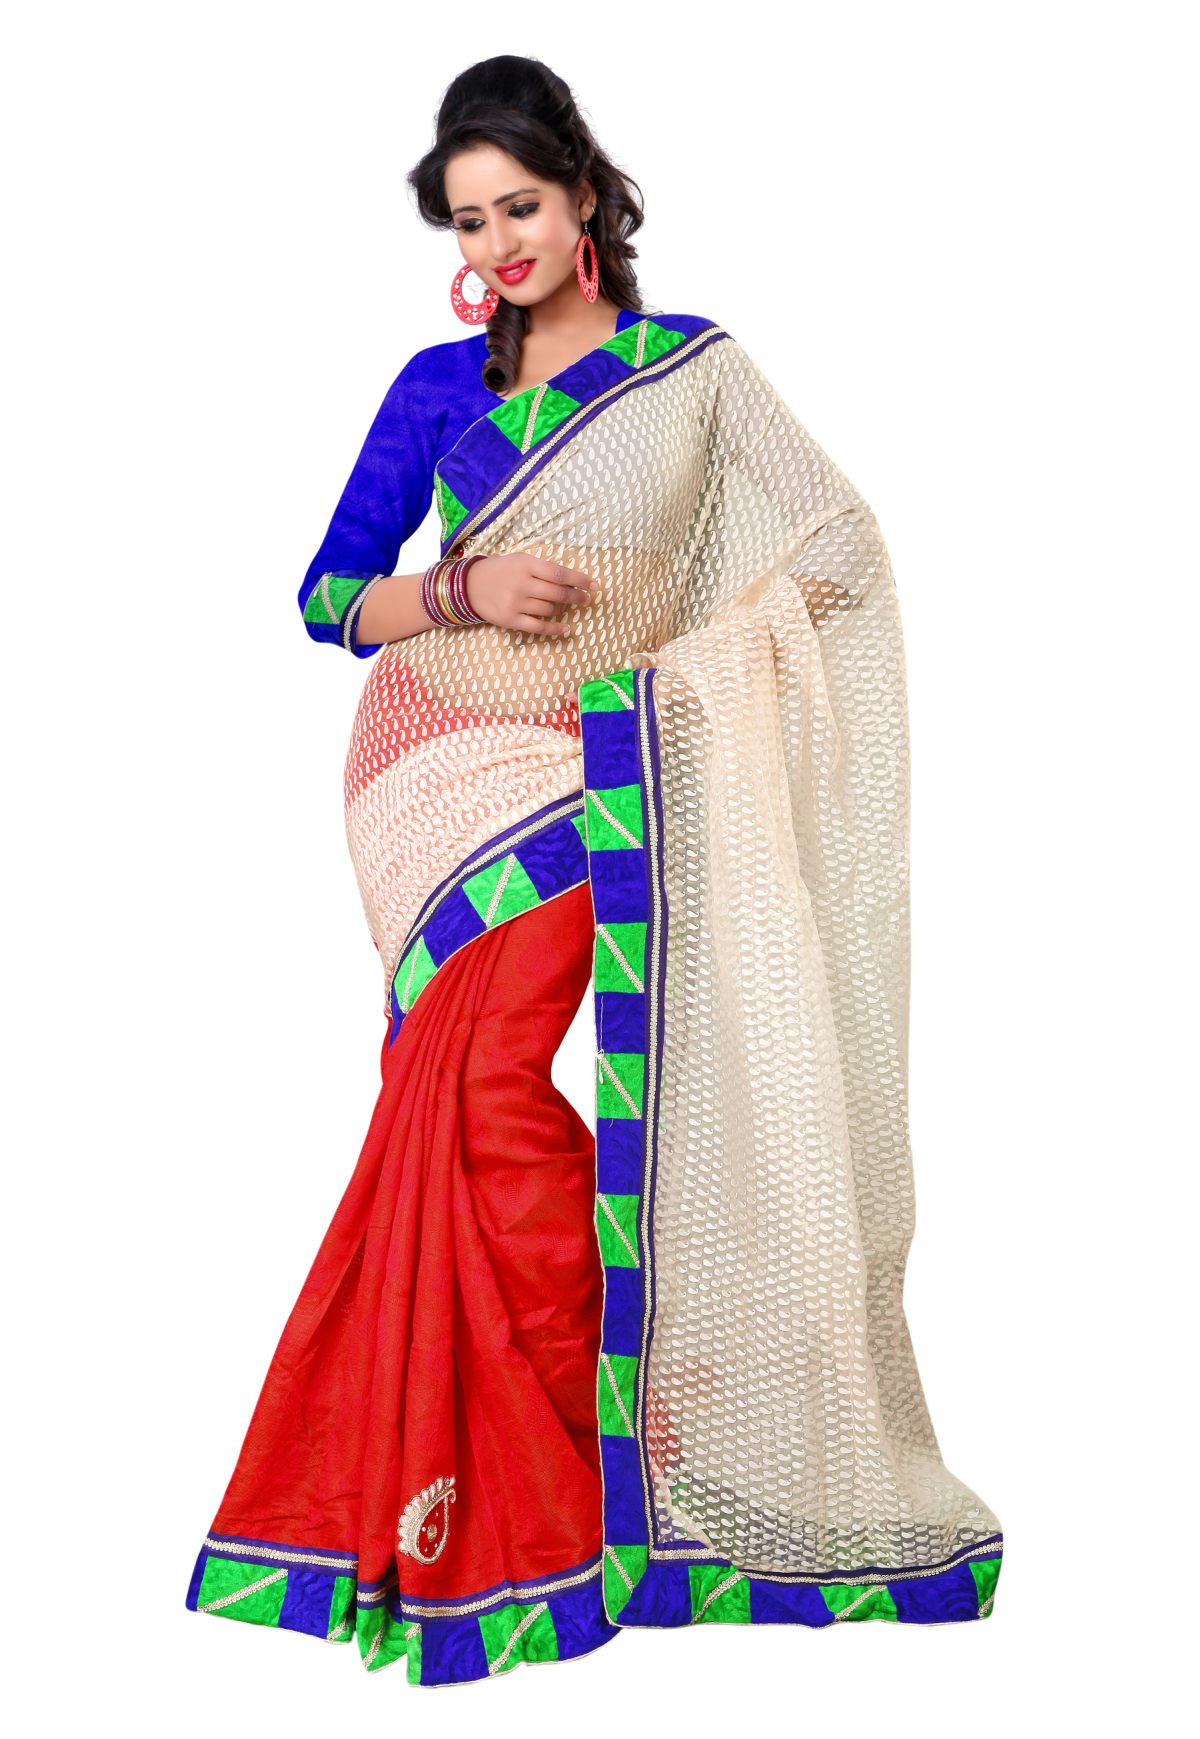 Triveni Adorable Border Worked Red Tissue,Brasso,Chanderi Saree 612A